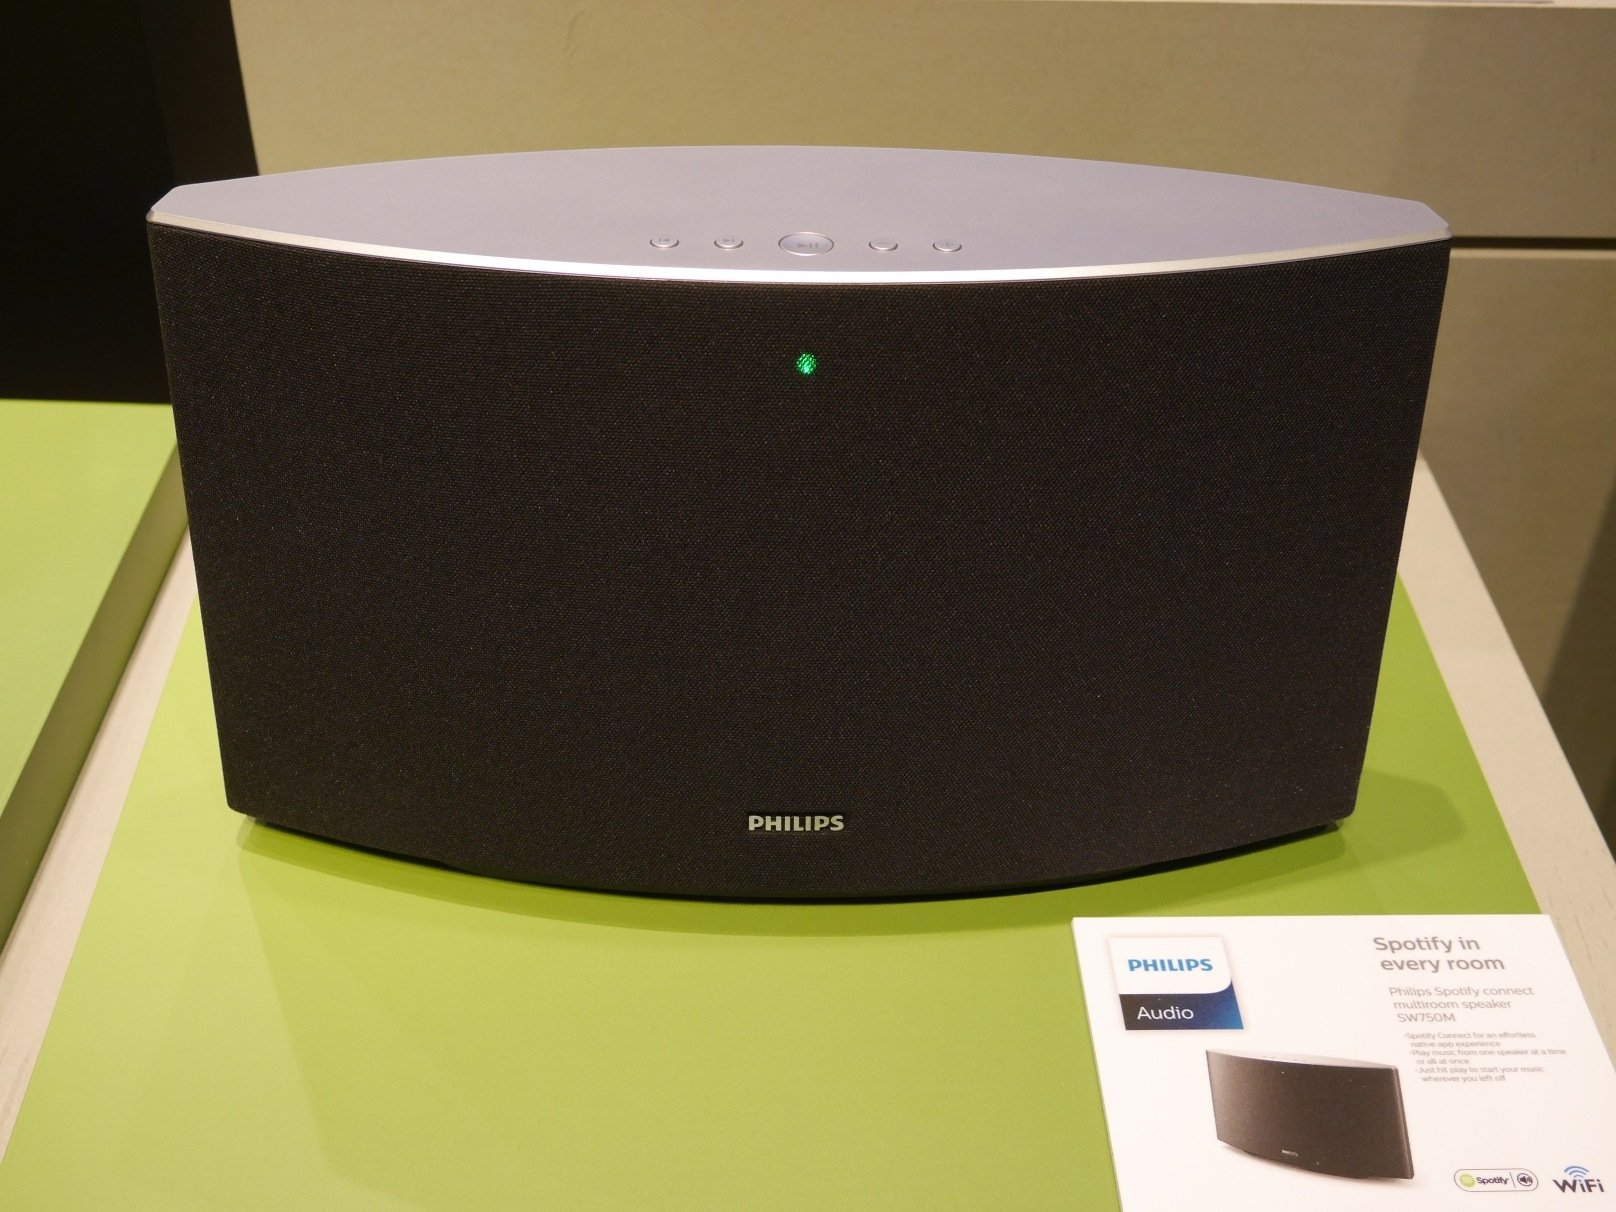 Philips Spotify Multiroom Speakers Could Be The Best Value Multi Room Streaming System Yet Expert Reviews